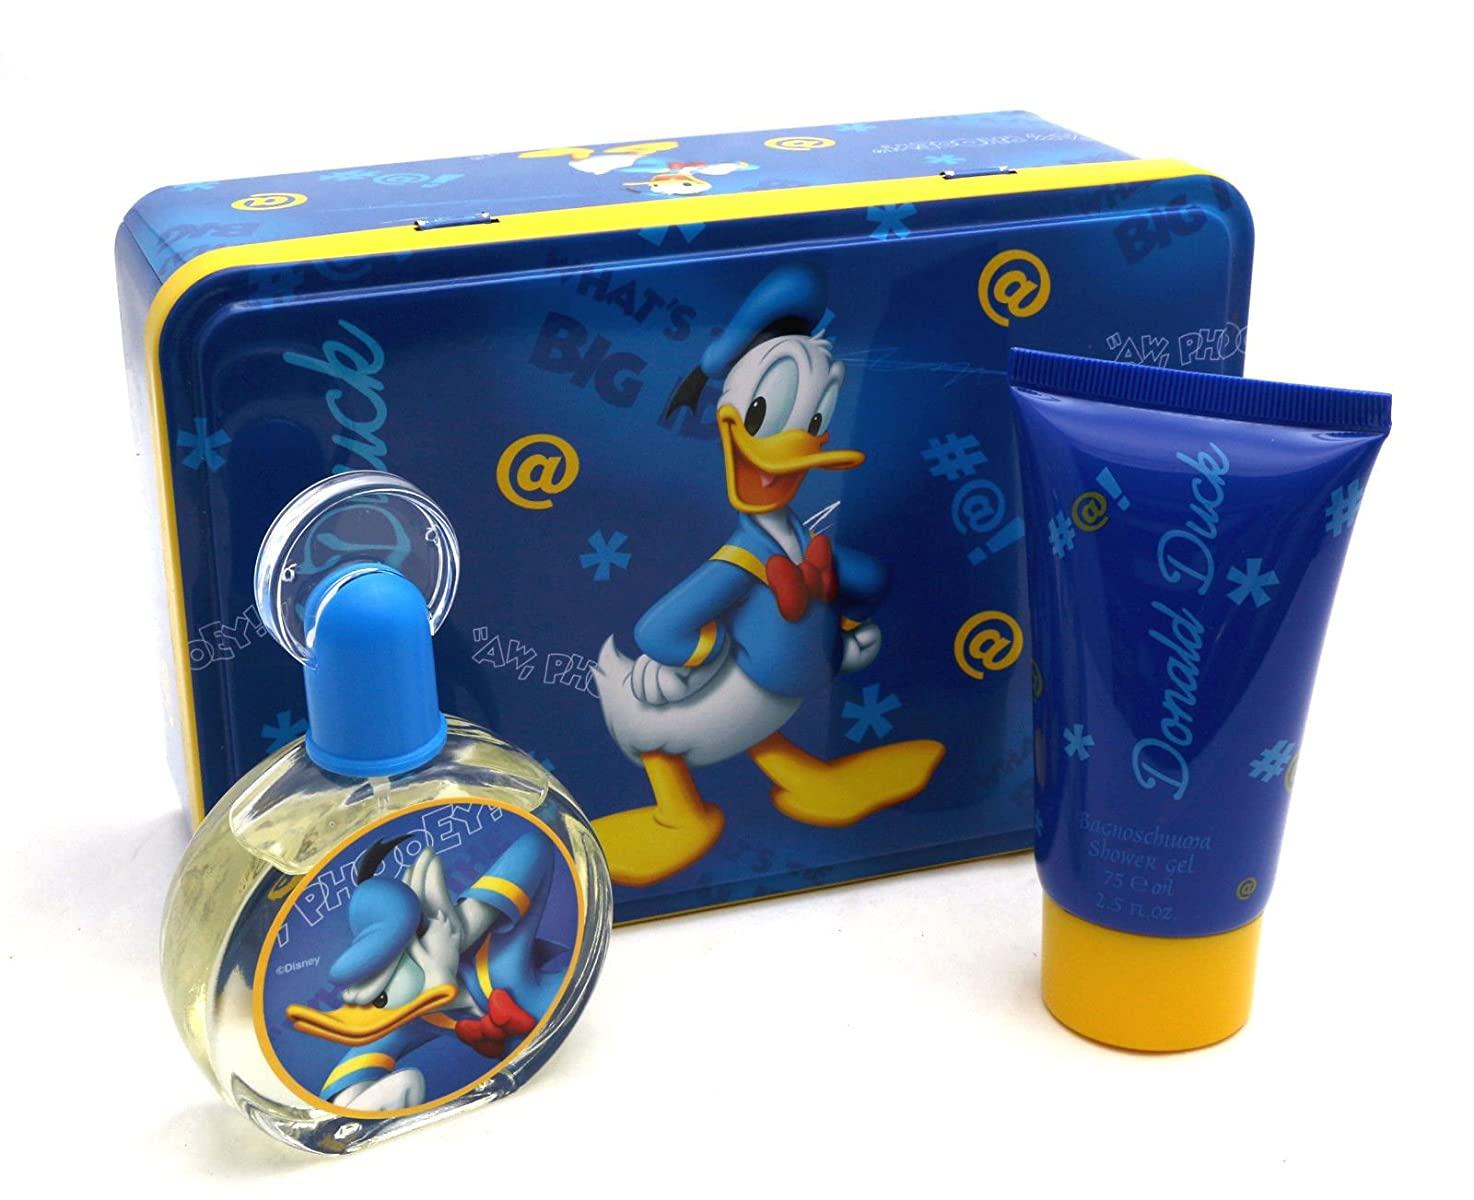 締める仮称不適Donald Duck (ドナルドダック) 1.7 oz (50ml) EDT Spray + 2.5 oz (75ml) Shower Gel by Disney